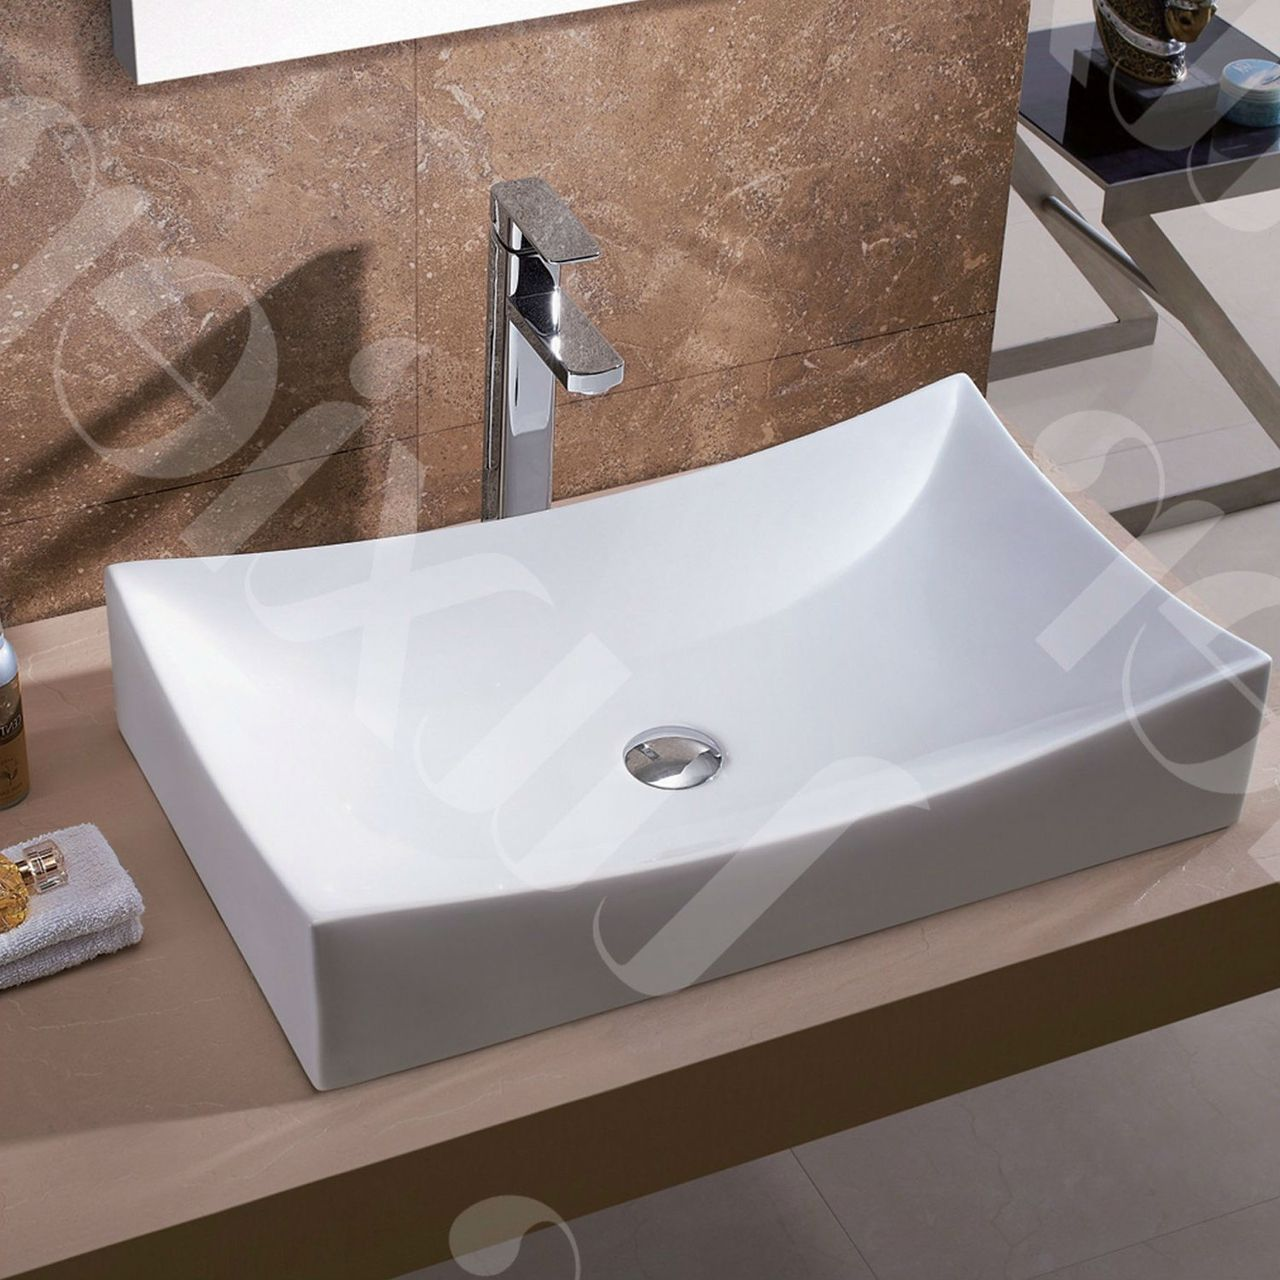 Modern European Style Oversized Porcelain Ceramic Vessel Bathroom Vanity Sink Quality House